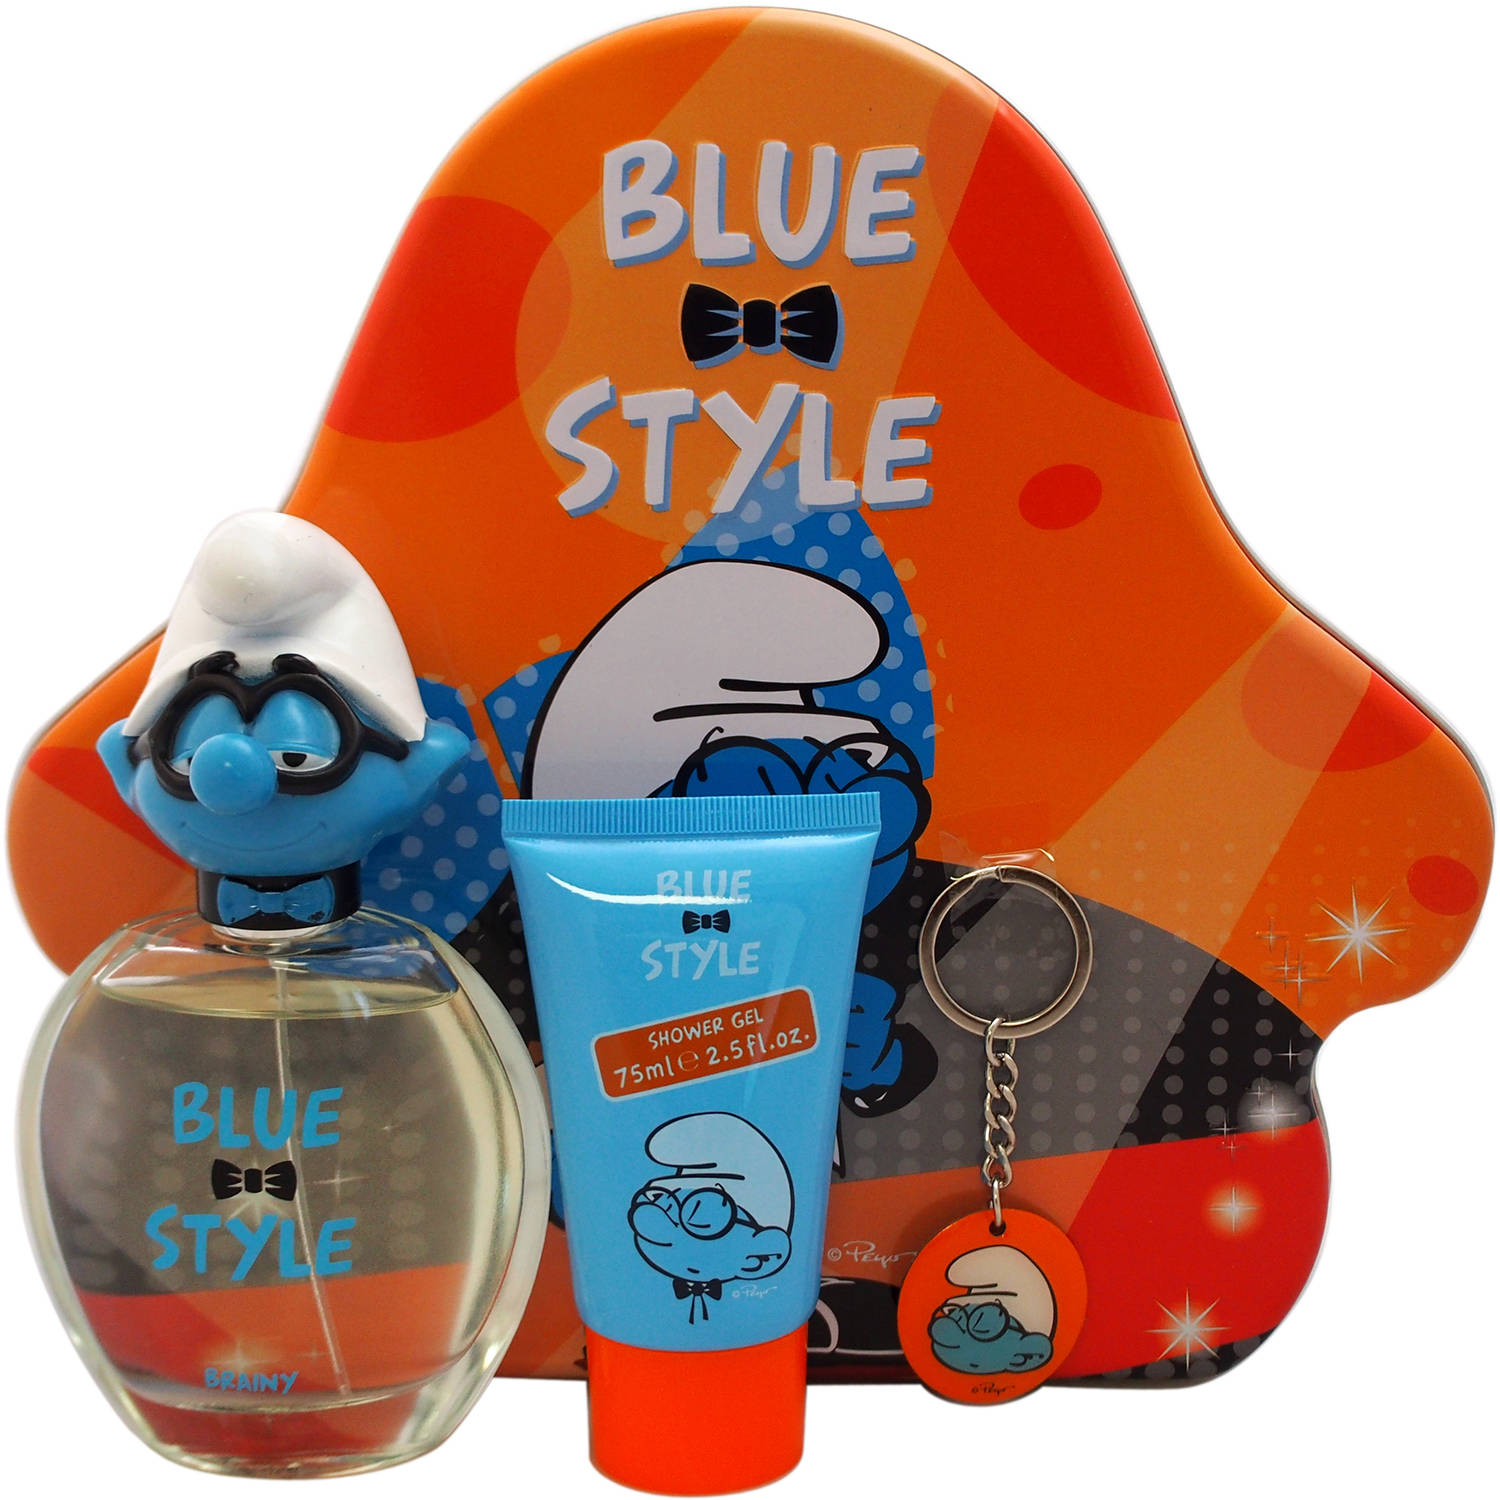 First American Brands The Smurfs Blue Style Brainy Gift Set for Kids, 3 pc